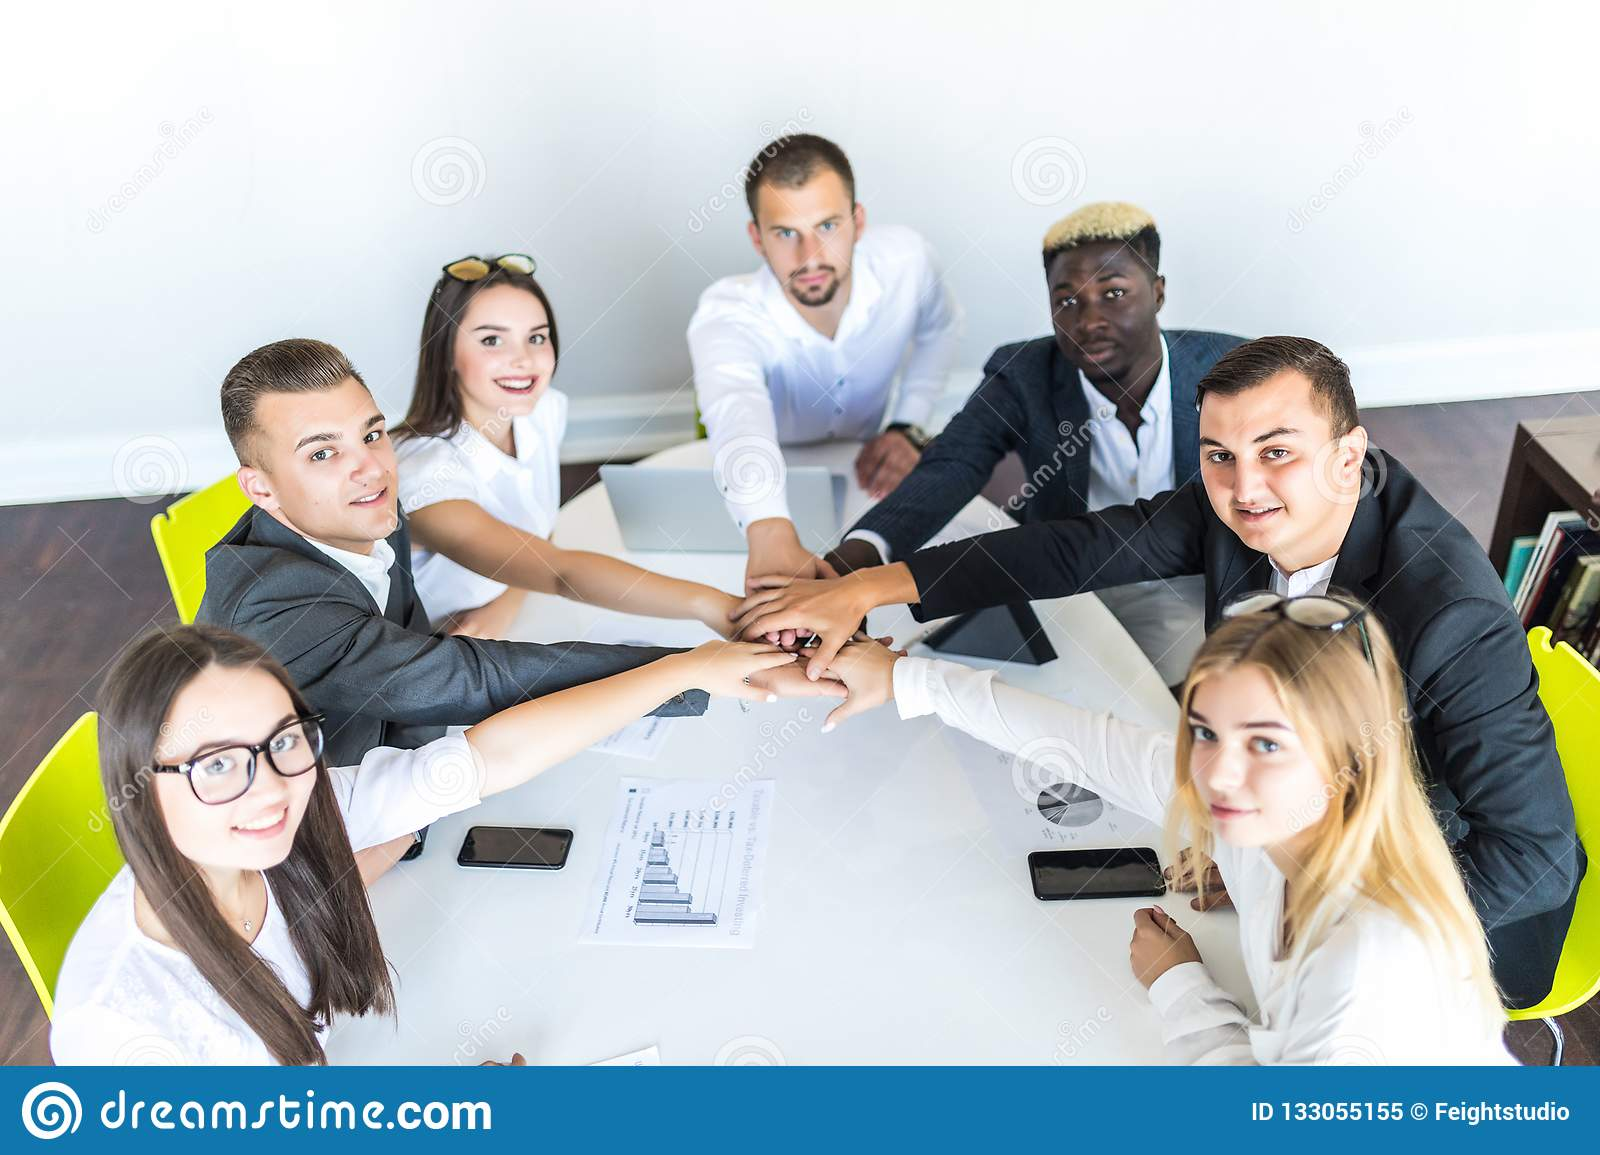 We are the great team. Group of happy business people holding hands together while sitting around the desk